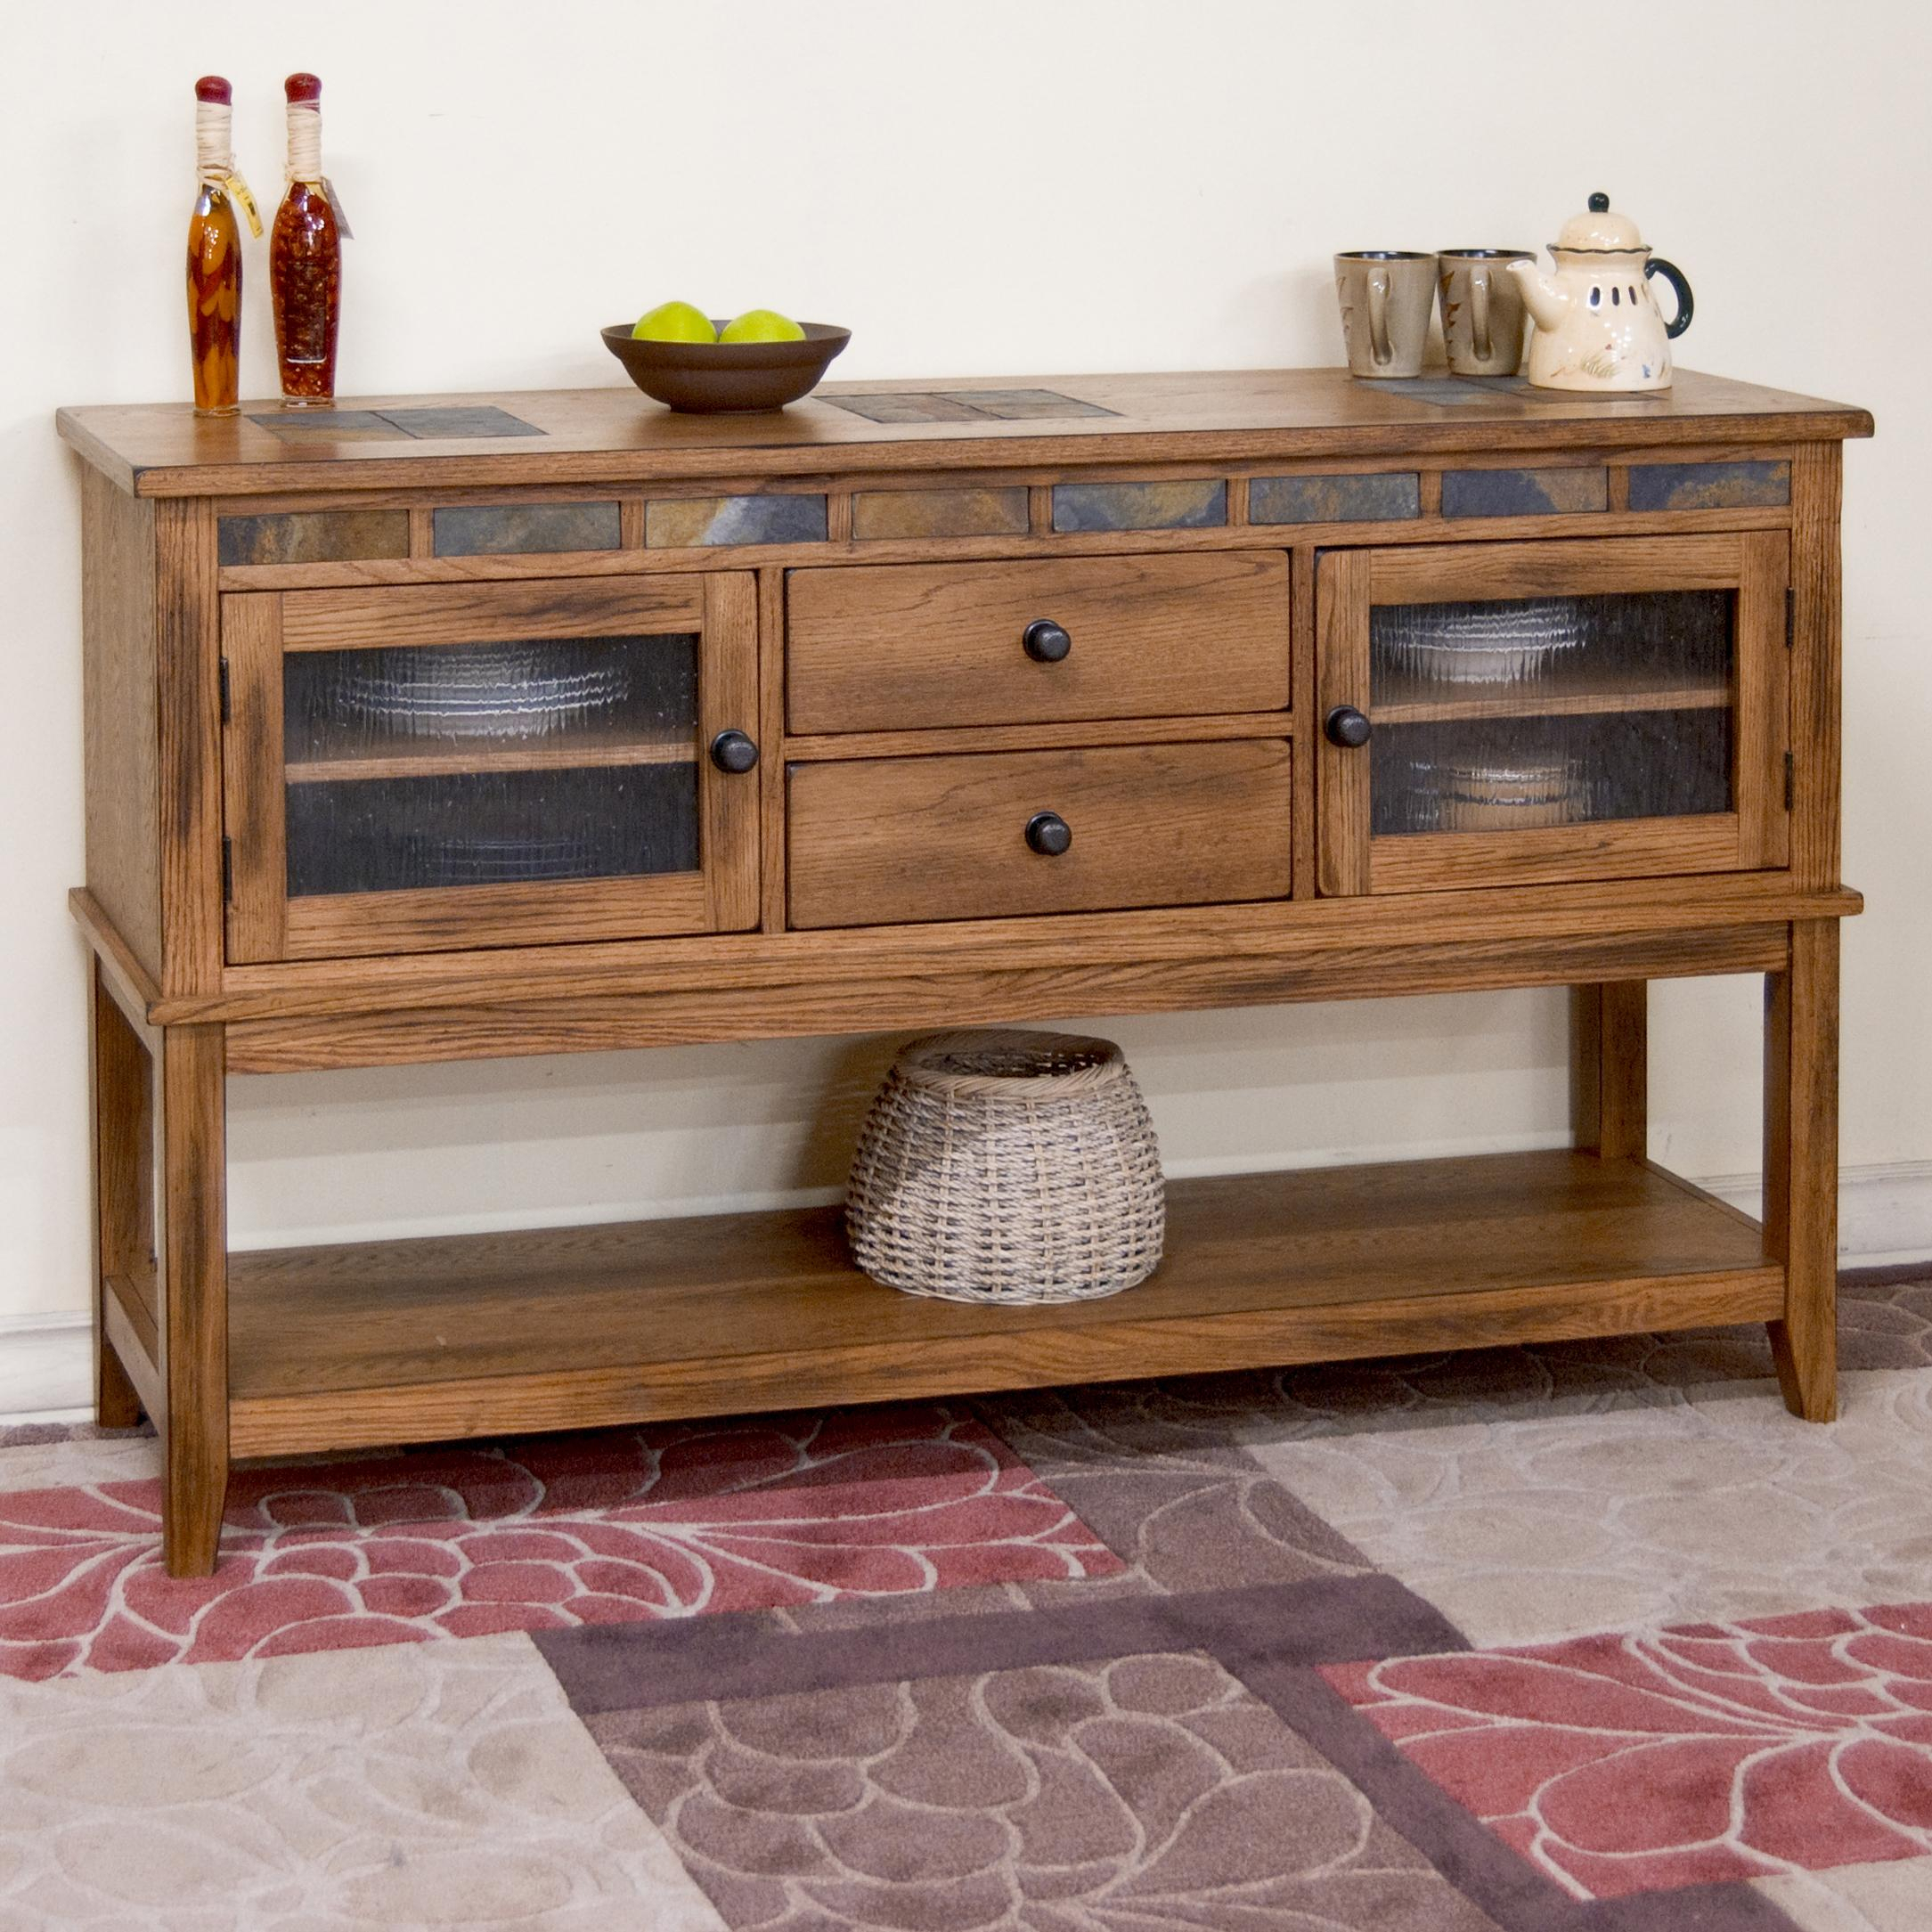 Endorsed Sideboards And Buffets Servers Morris Home Within Solid Wood Contemporary Sideboards Buffets (View 9 of 30)